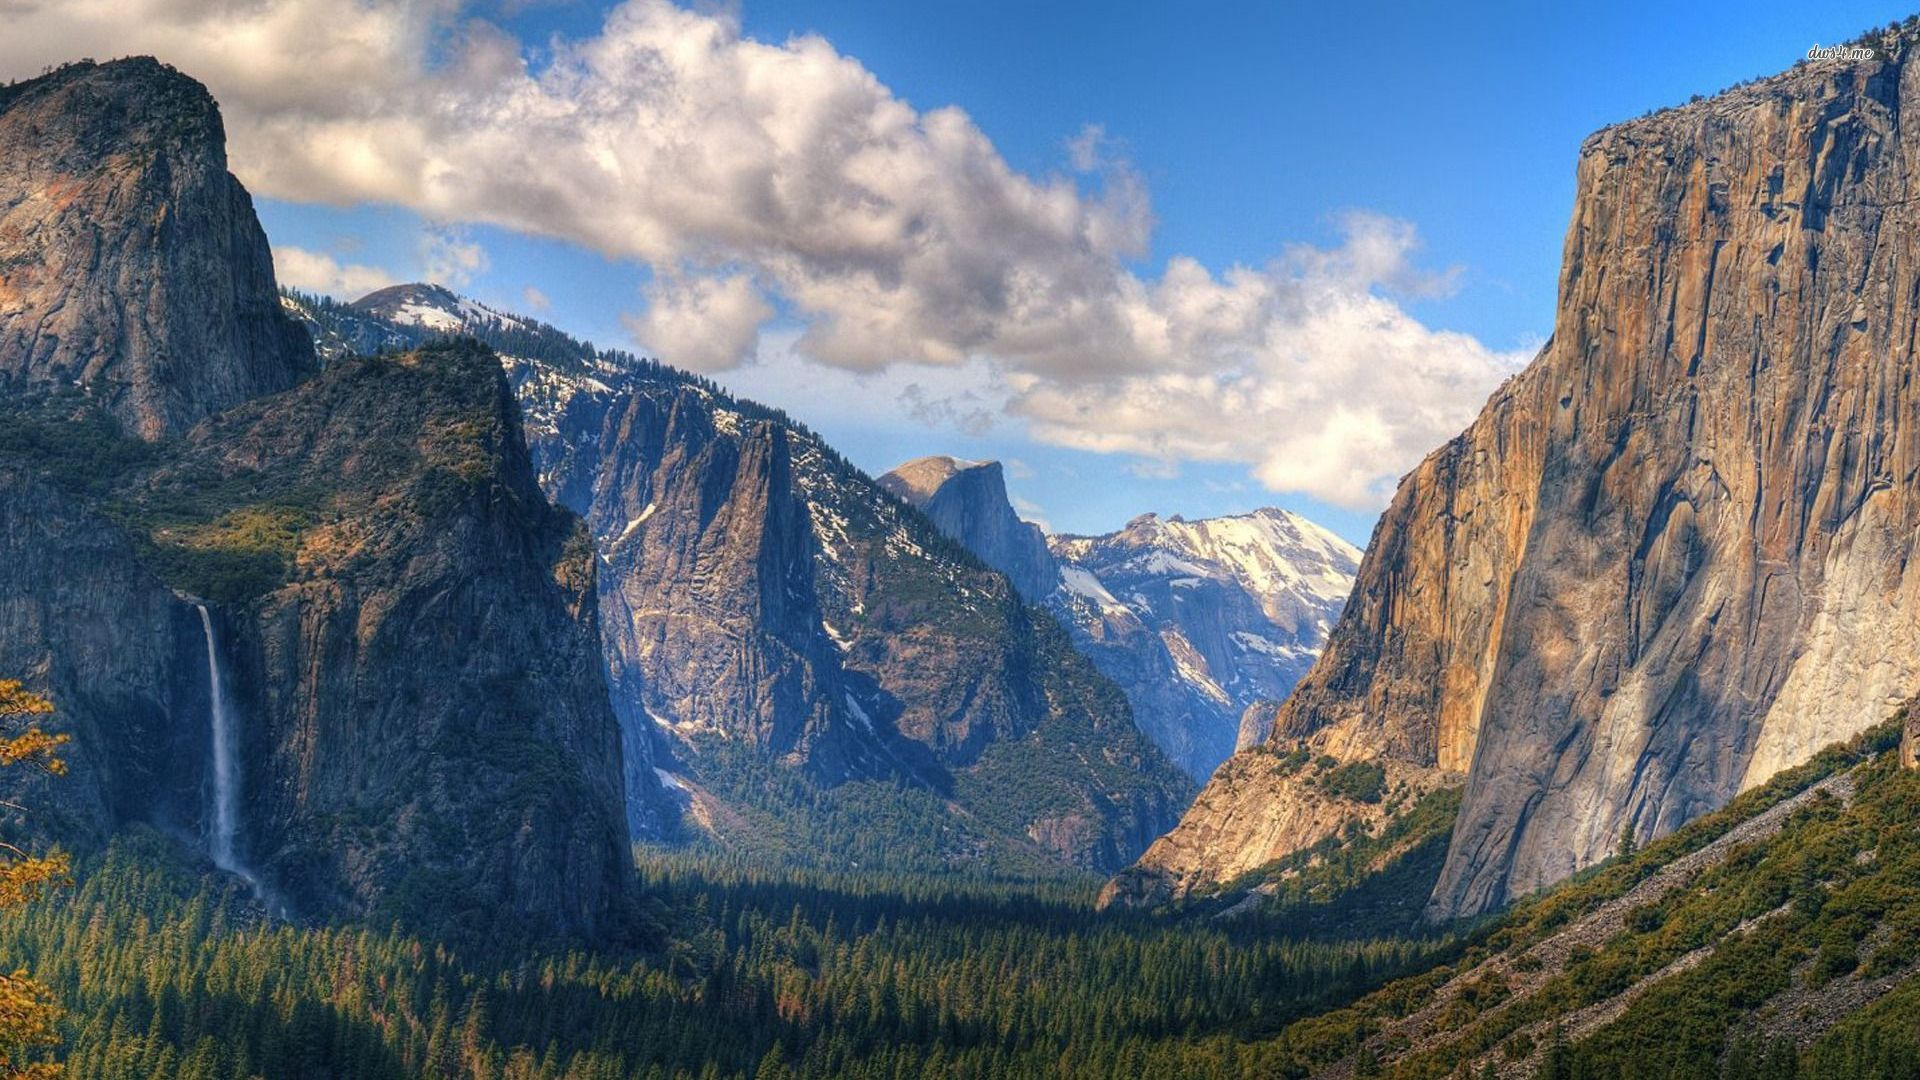 Yosemite wallpaper hd for Fenster yosemite